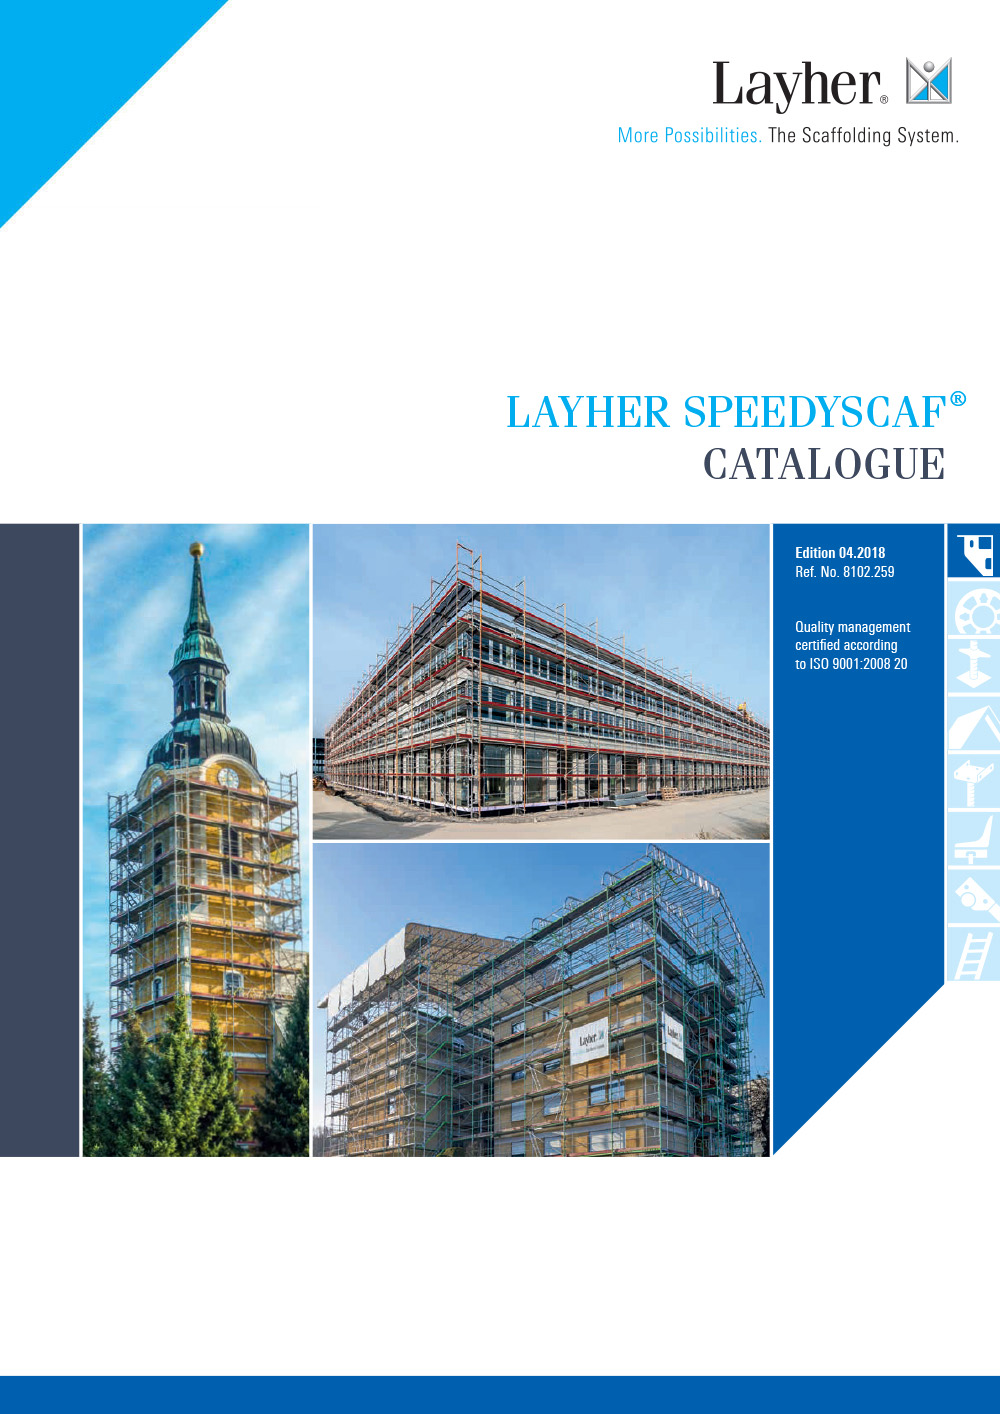 Layher SpeedyScaf System Catalogue